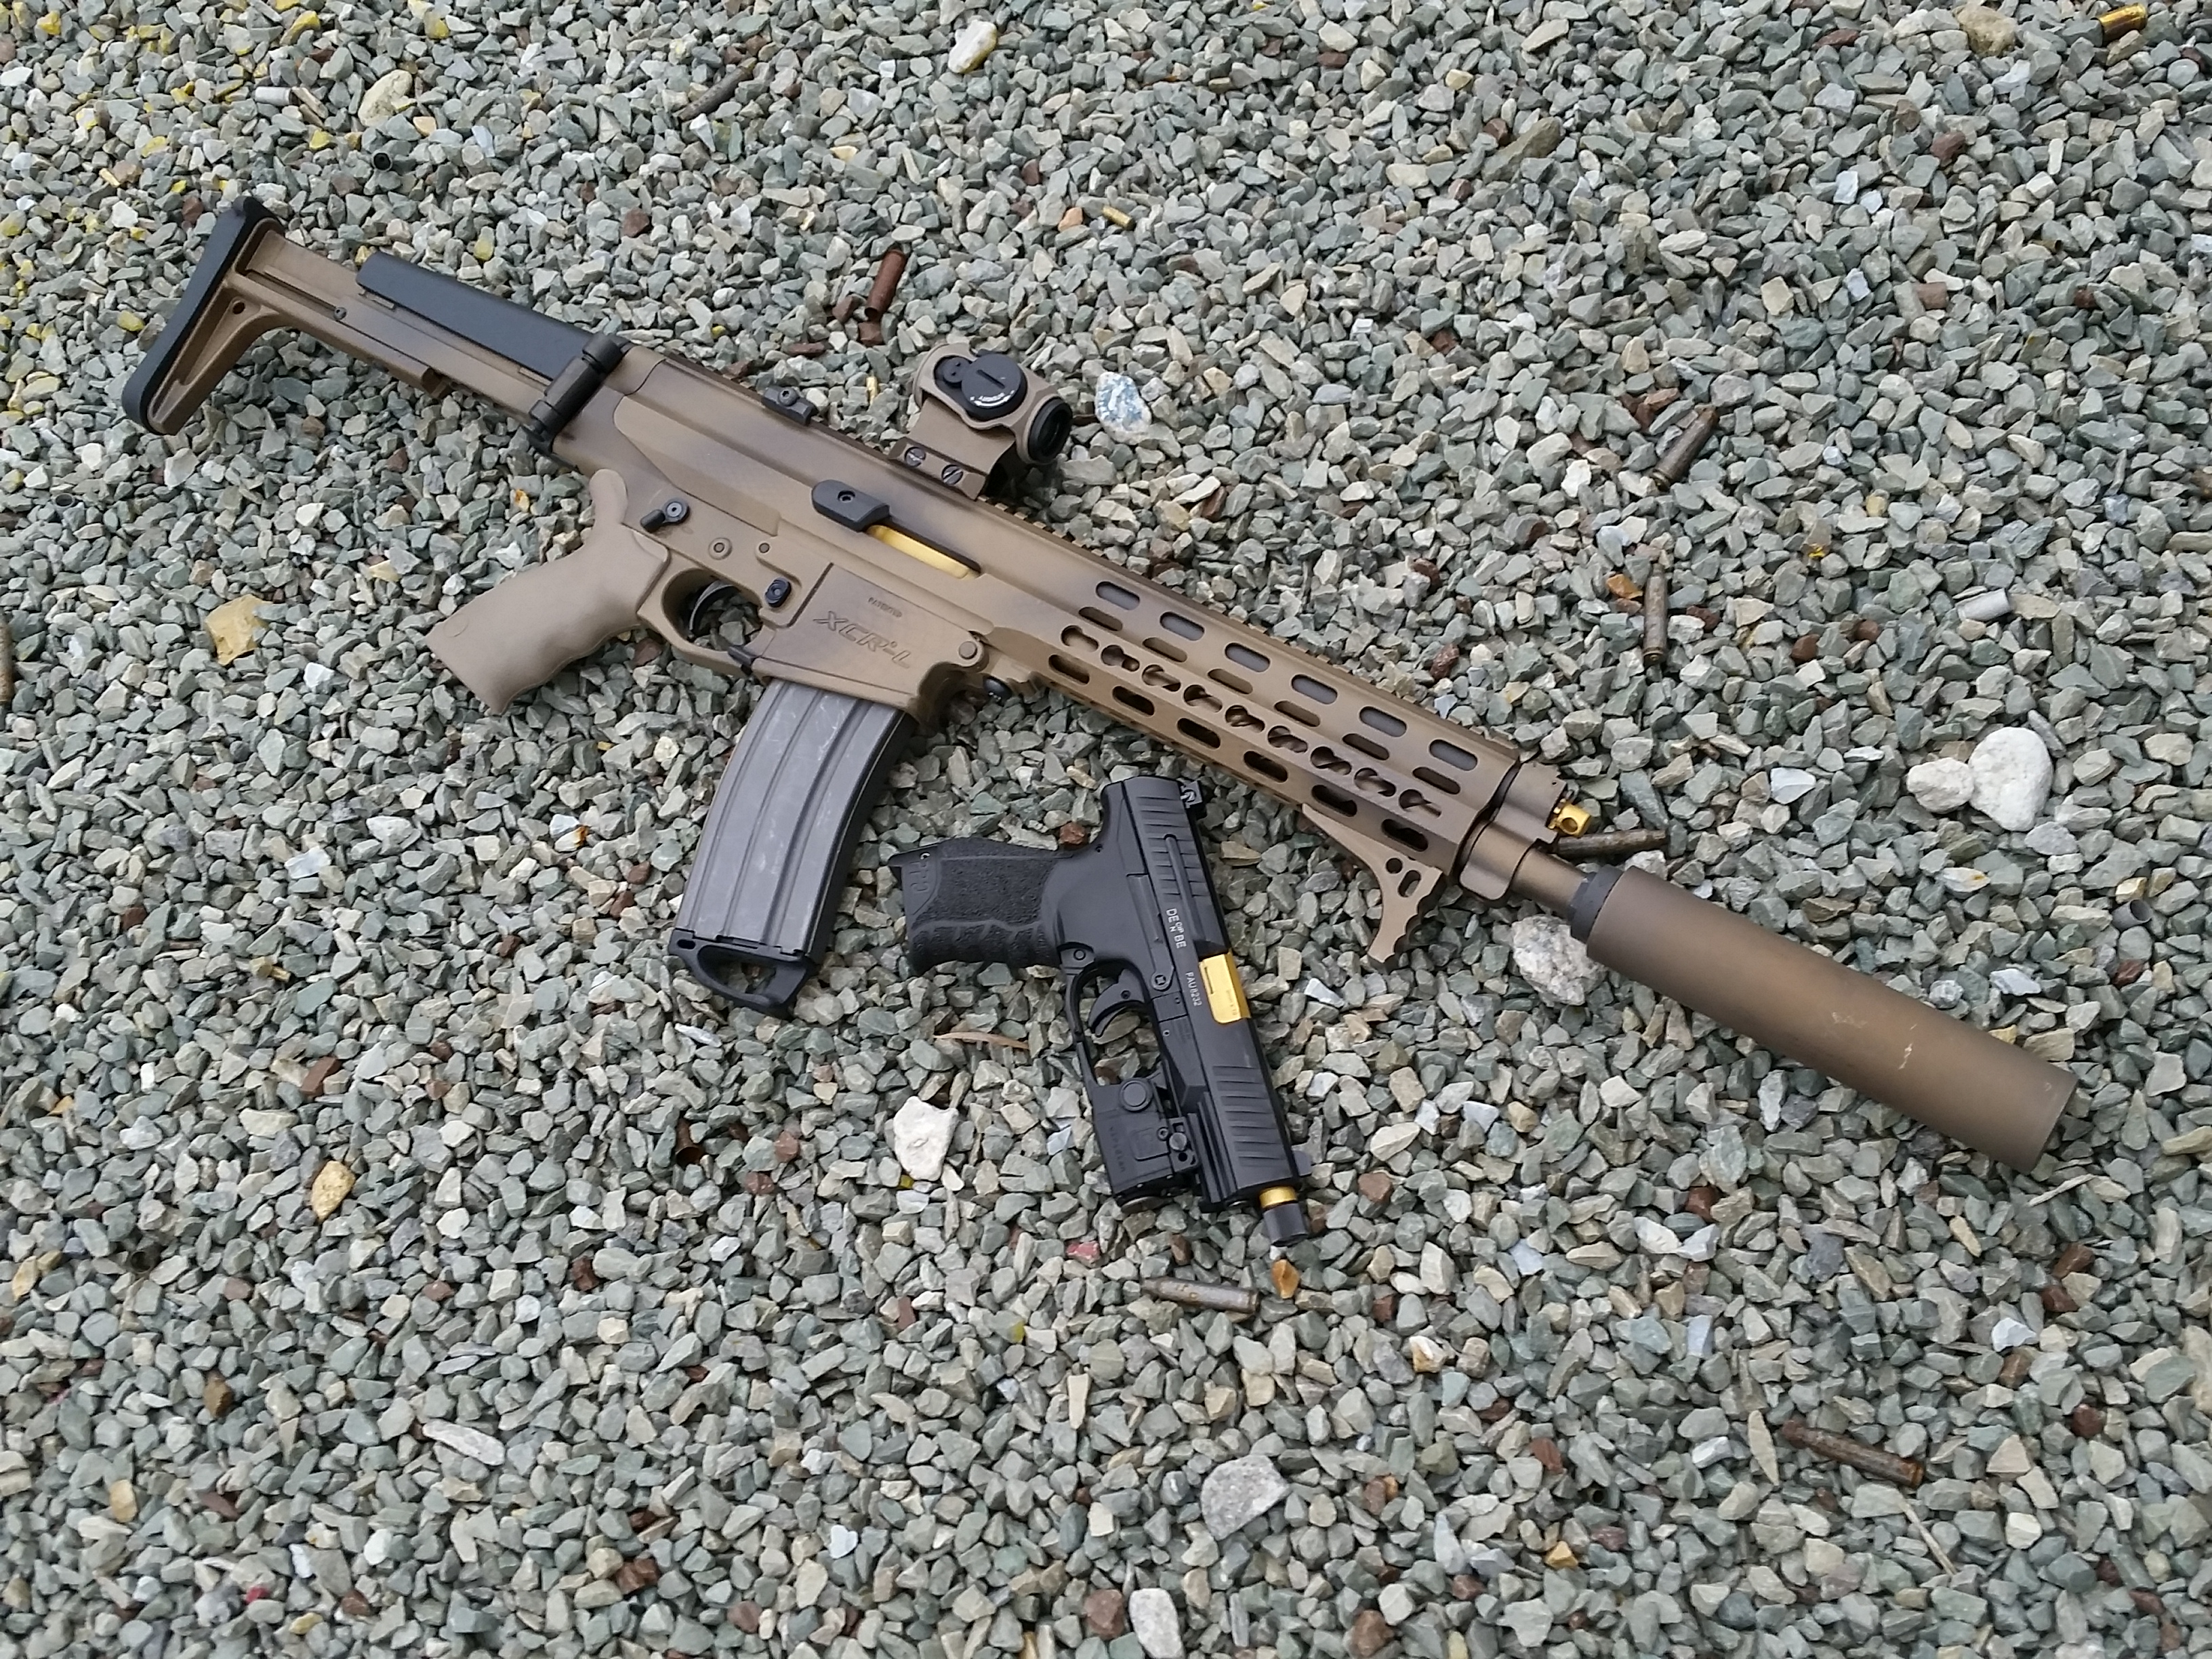 XCR SBR Suppressed-20141123_133222.jpg